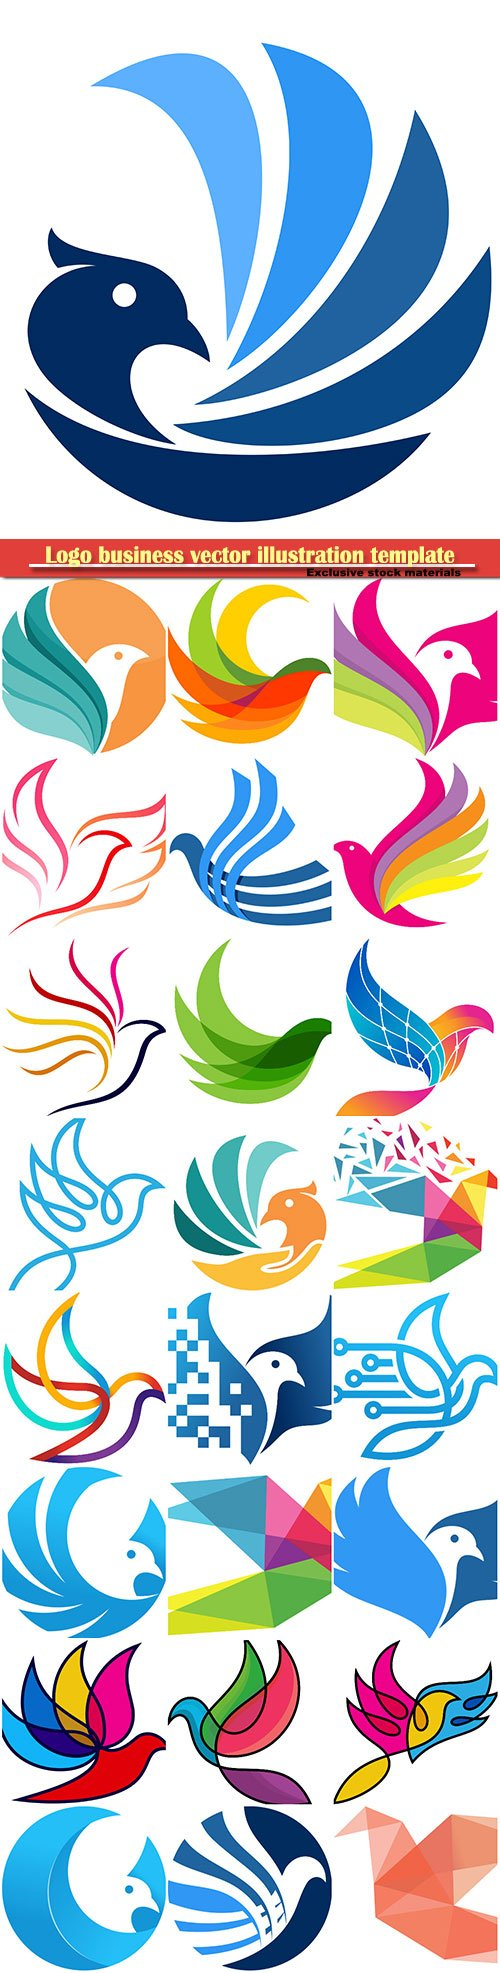 Birds logo business vector illustration template # 83